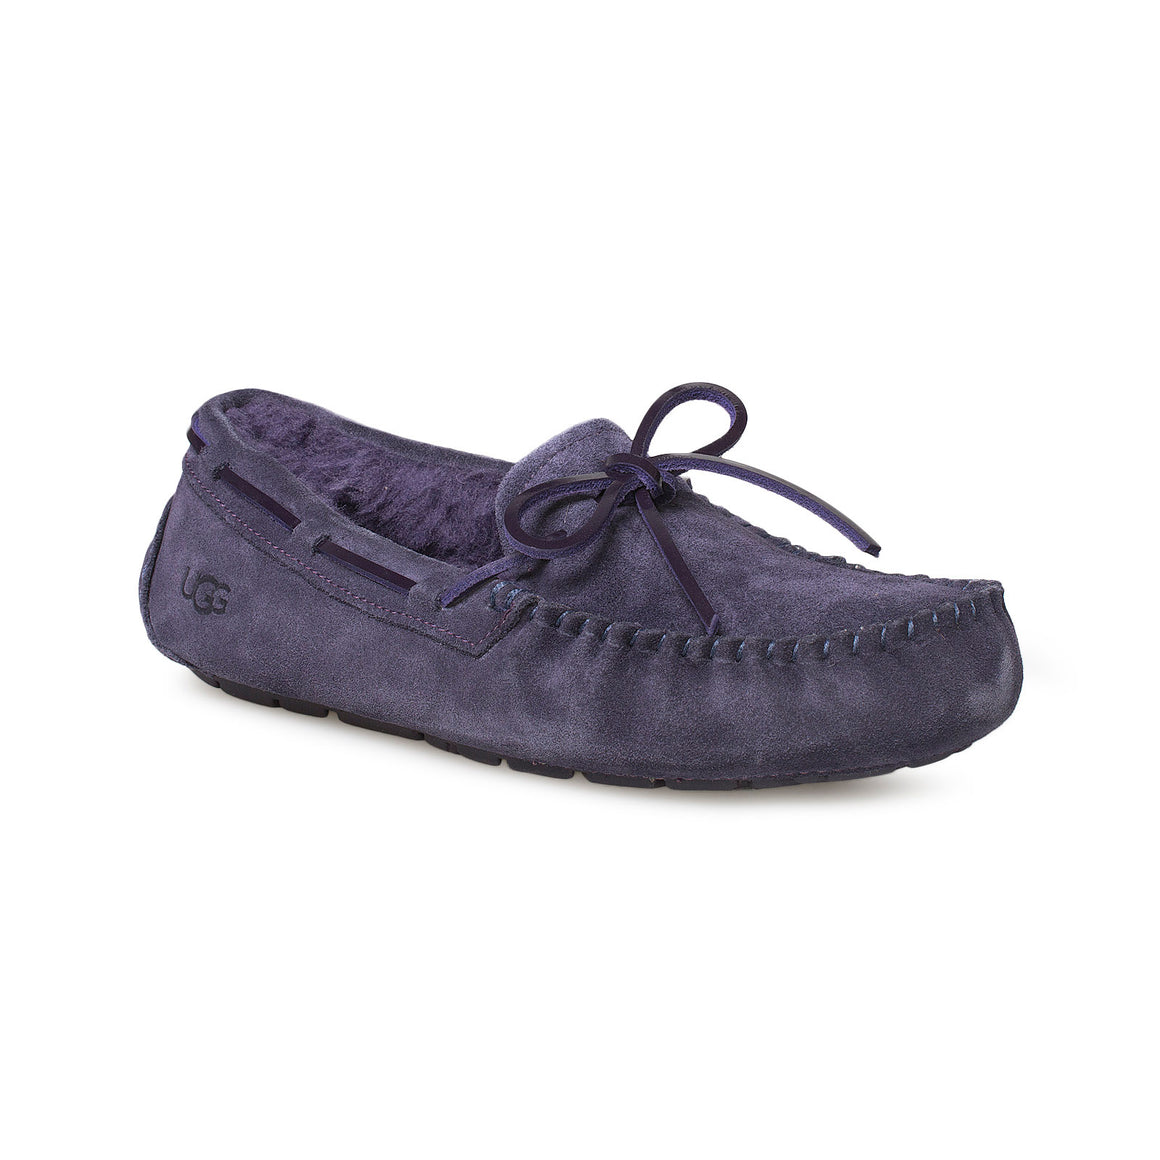 UGG Dakota Night Shade Slippers - Women's